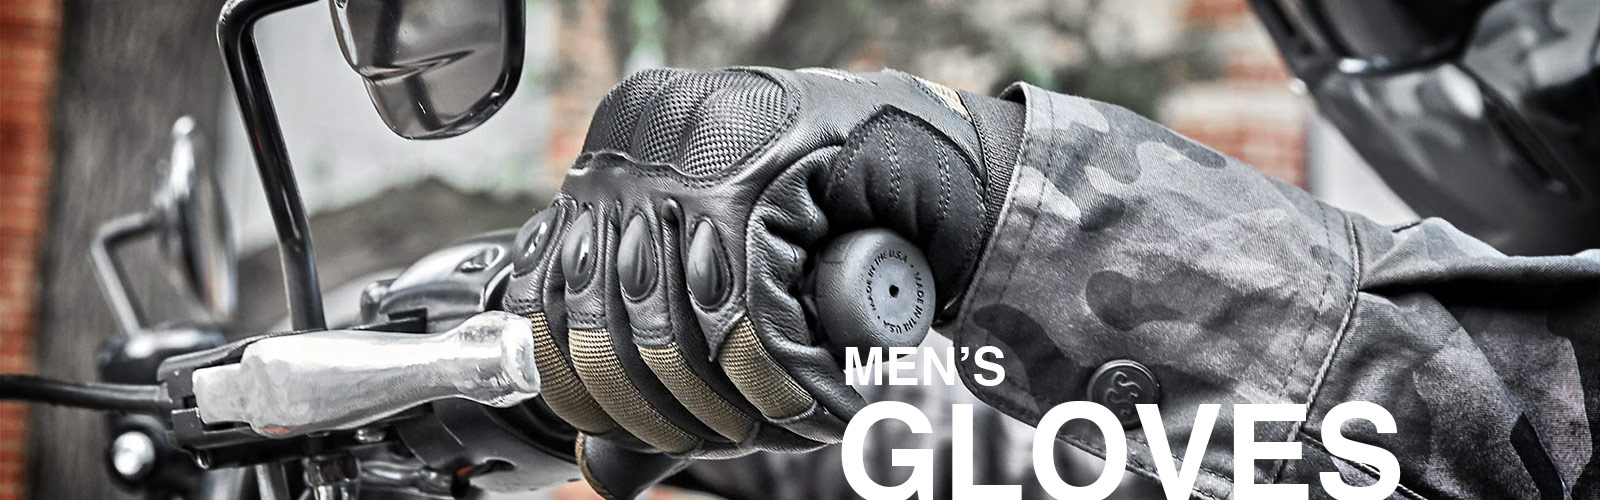 Speed and Strength Men's Motorcycle Gloves